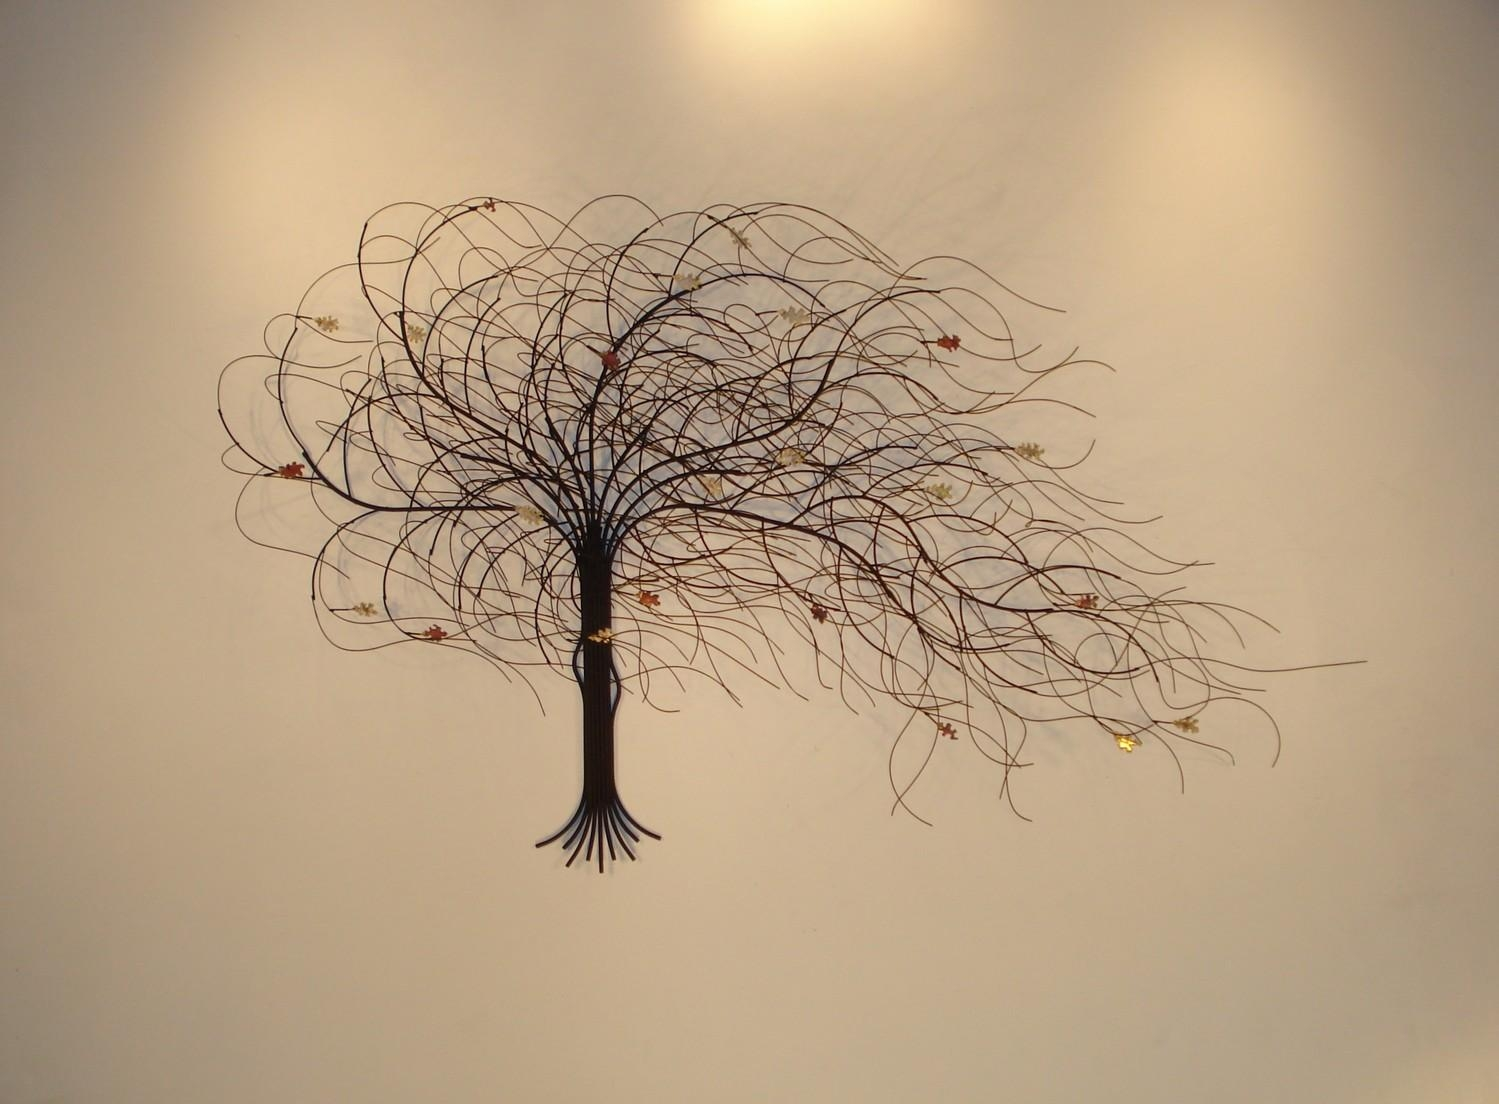 September Tree – Wall Art – Metal Sculpture – Metal Decor With Tree Wall Art Sculpture (Image 13 of 20)